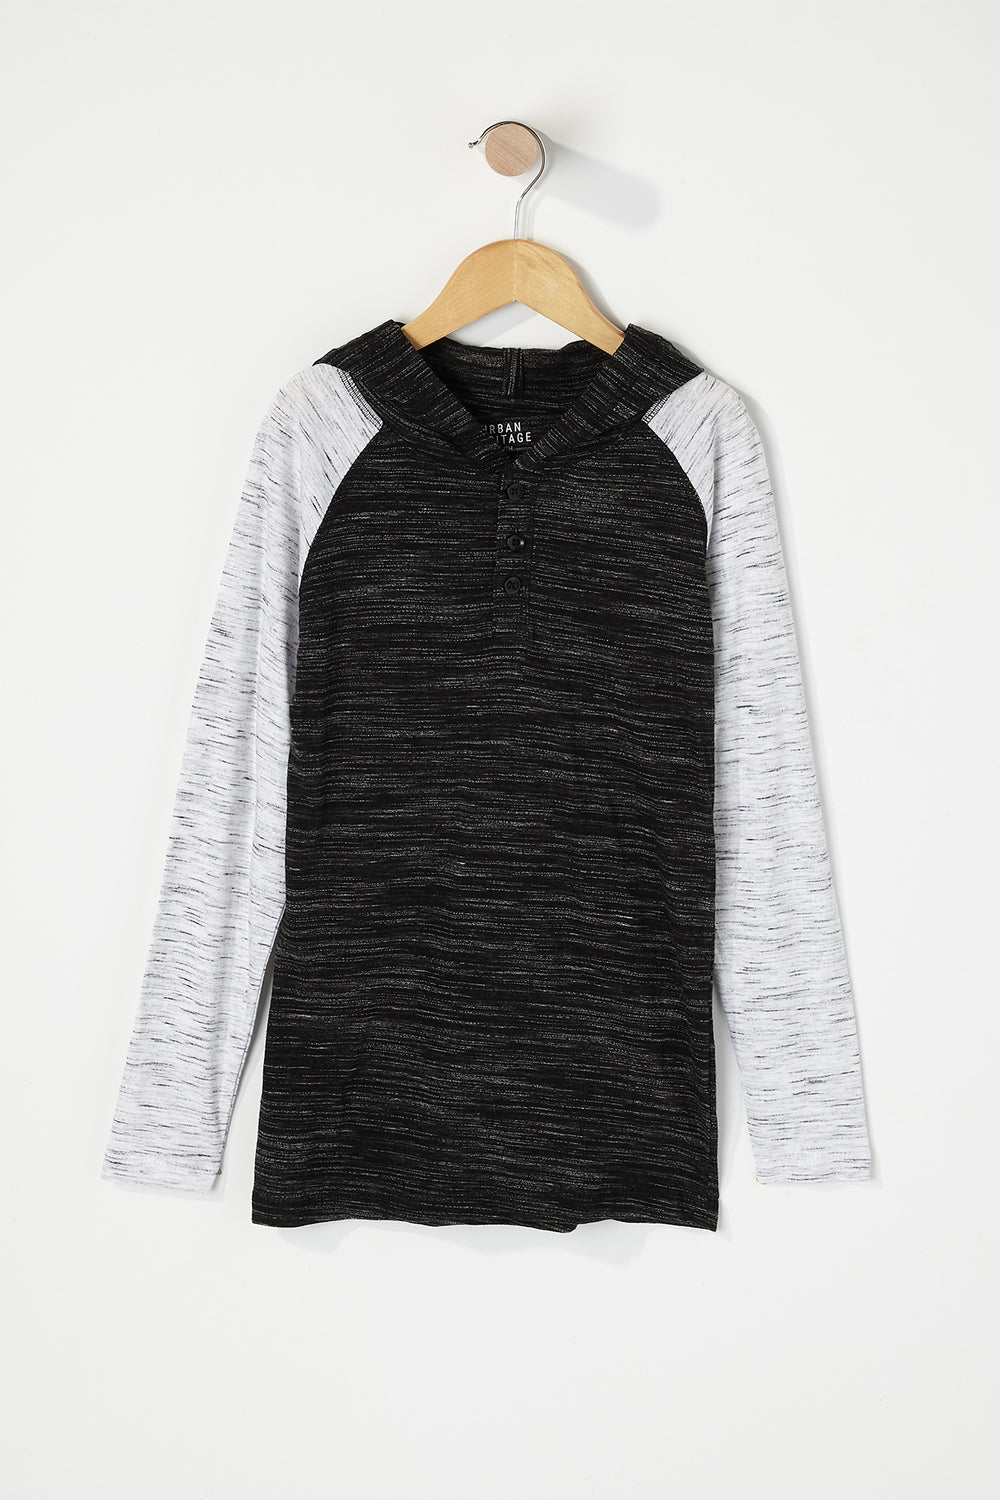 Boys Space Dye Contrast Henley Hooded Long Sleeve Black